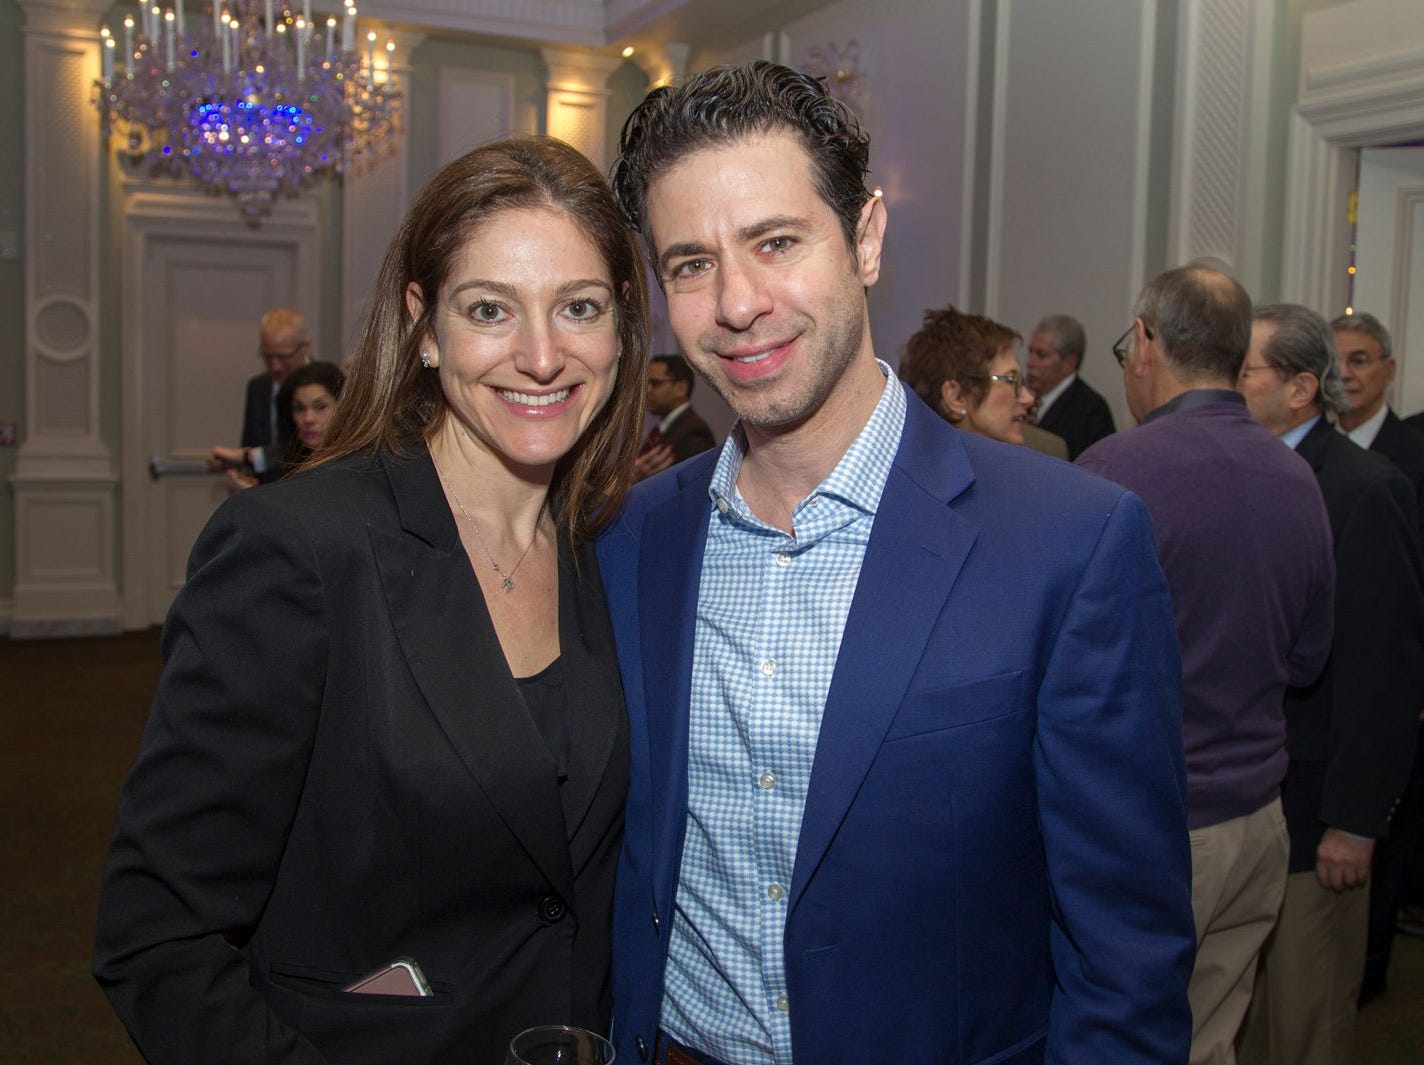 Dr. Rachel Bier, Dr. Roey Pasternak. Englewood Health held its annual Medical Staff Recognition Dinner at Rockliegh Country Club. 01/17/2019